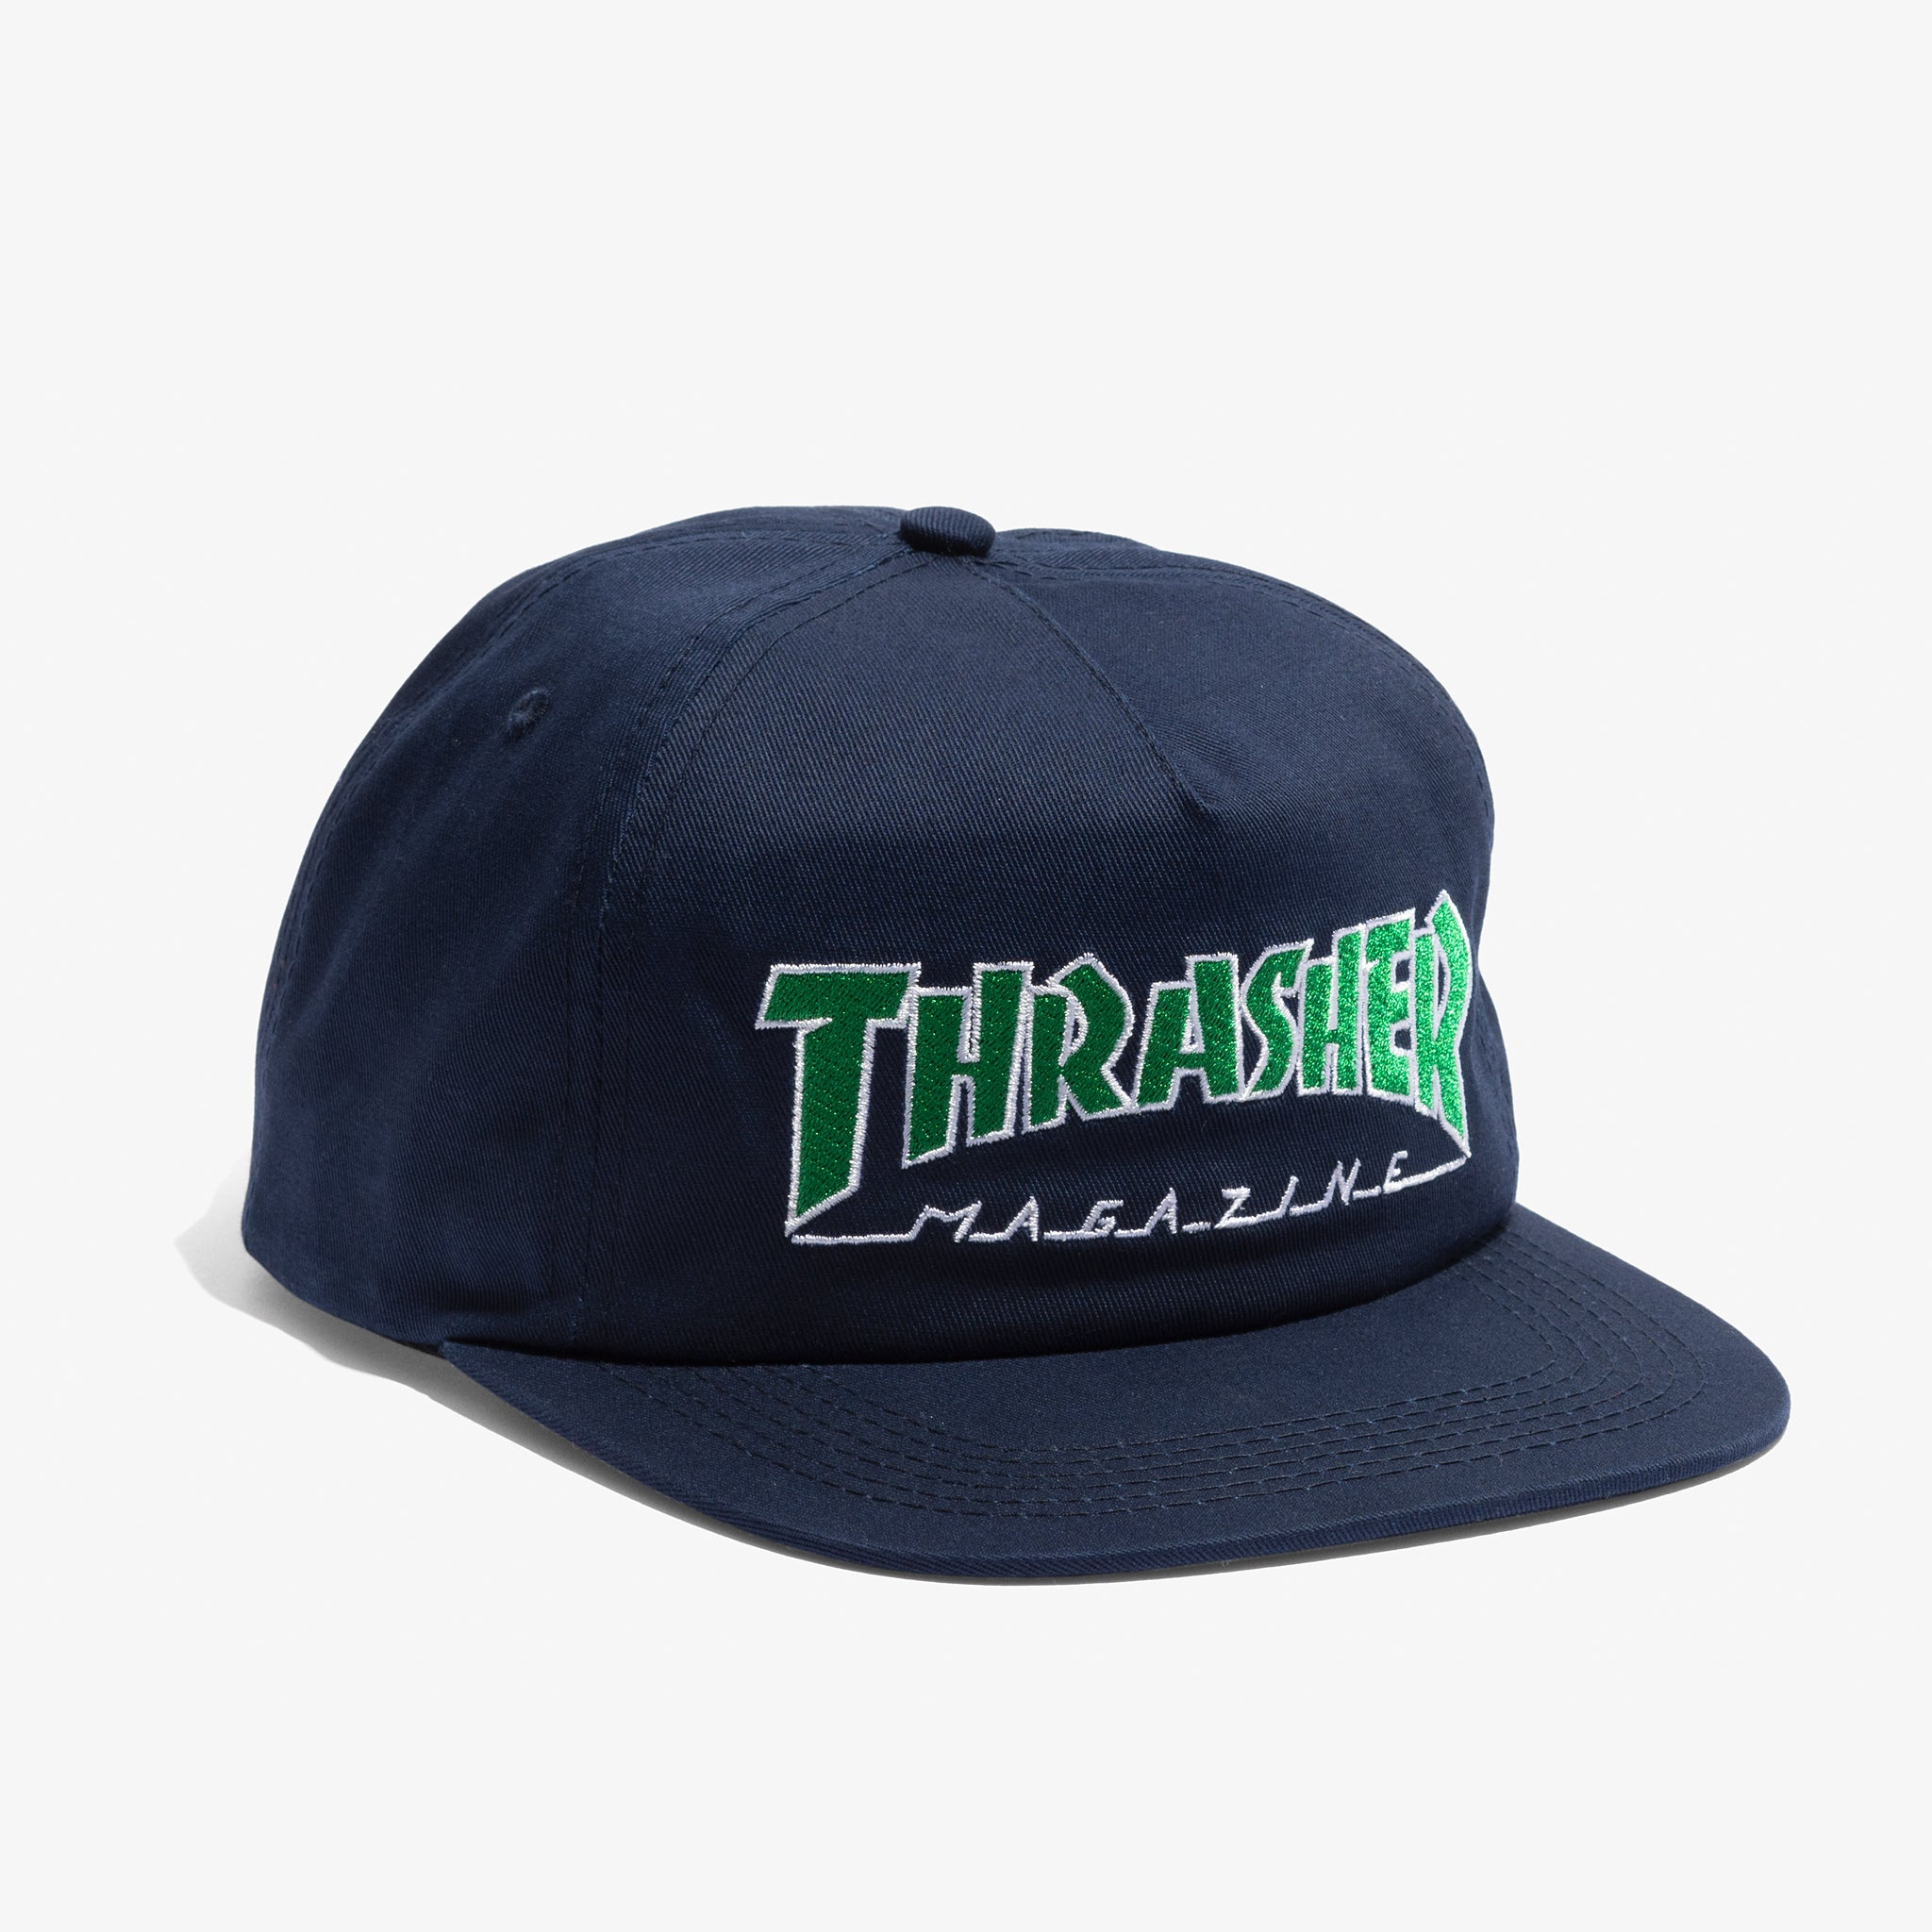 601080111 THRASHER OUTLINED MAG SNAPBACK (BLUE/GREEN)